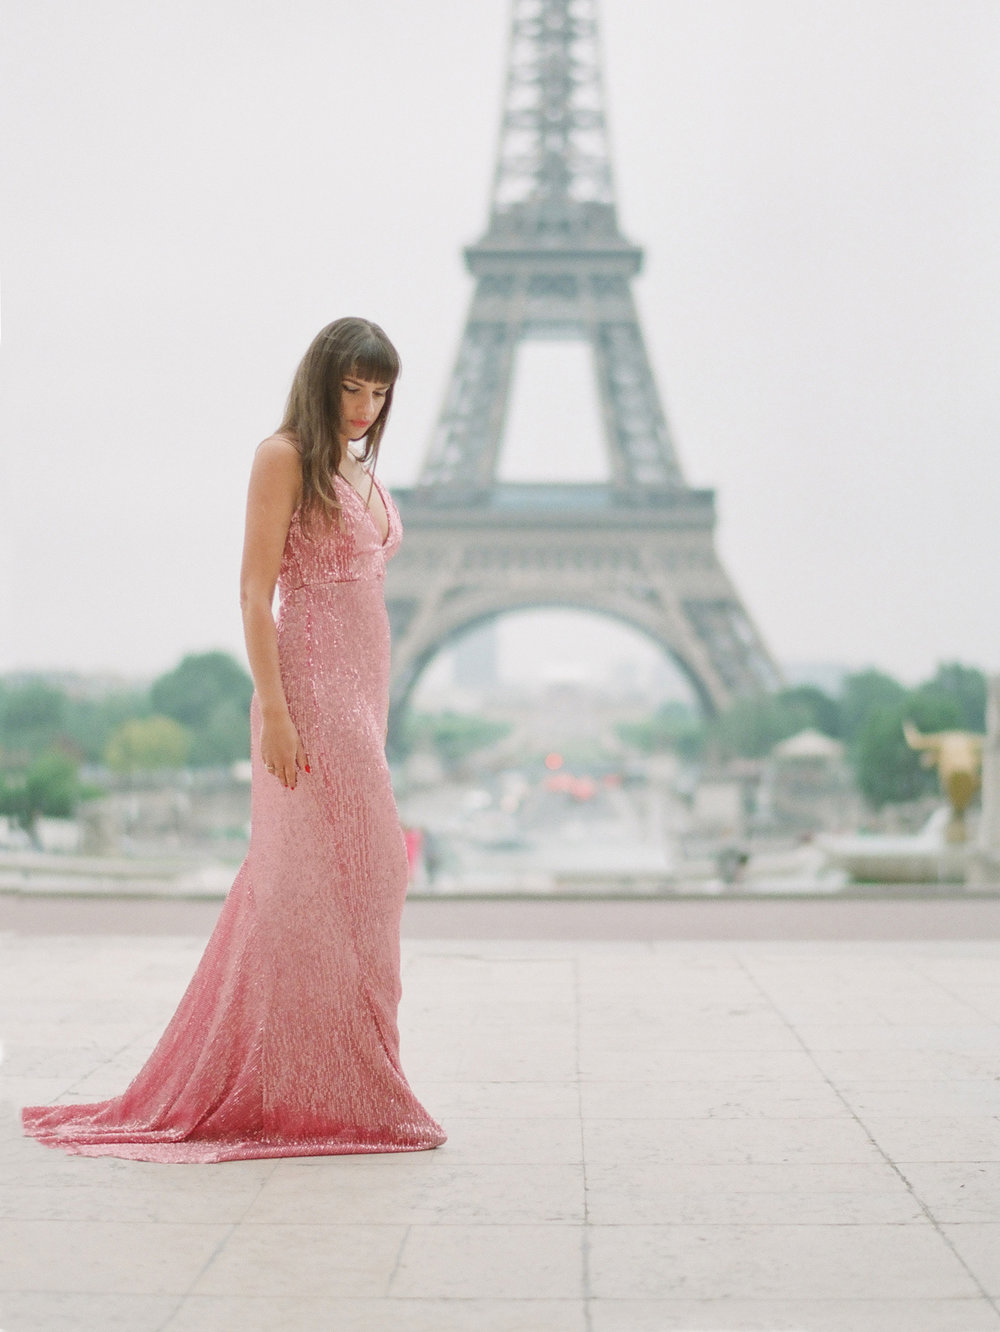 Engagement session on film from Paris vintage